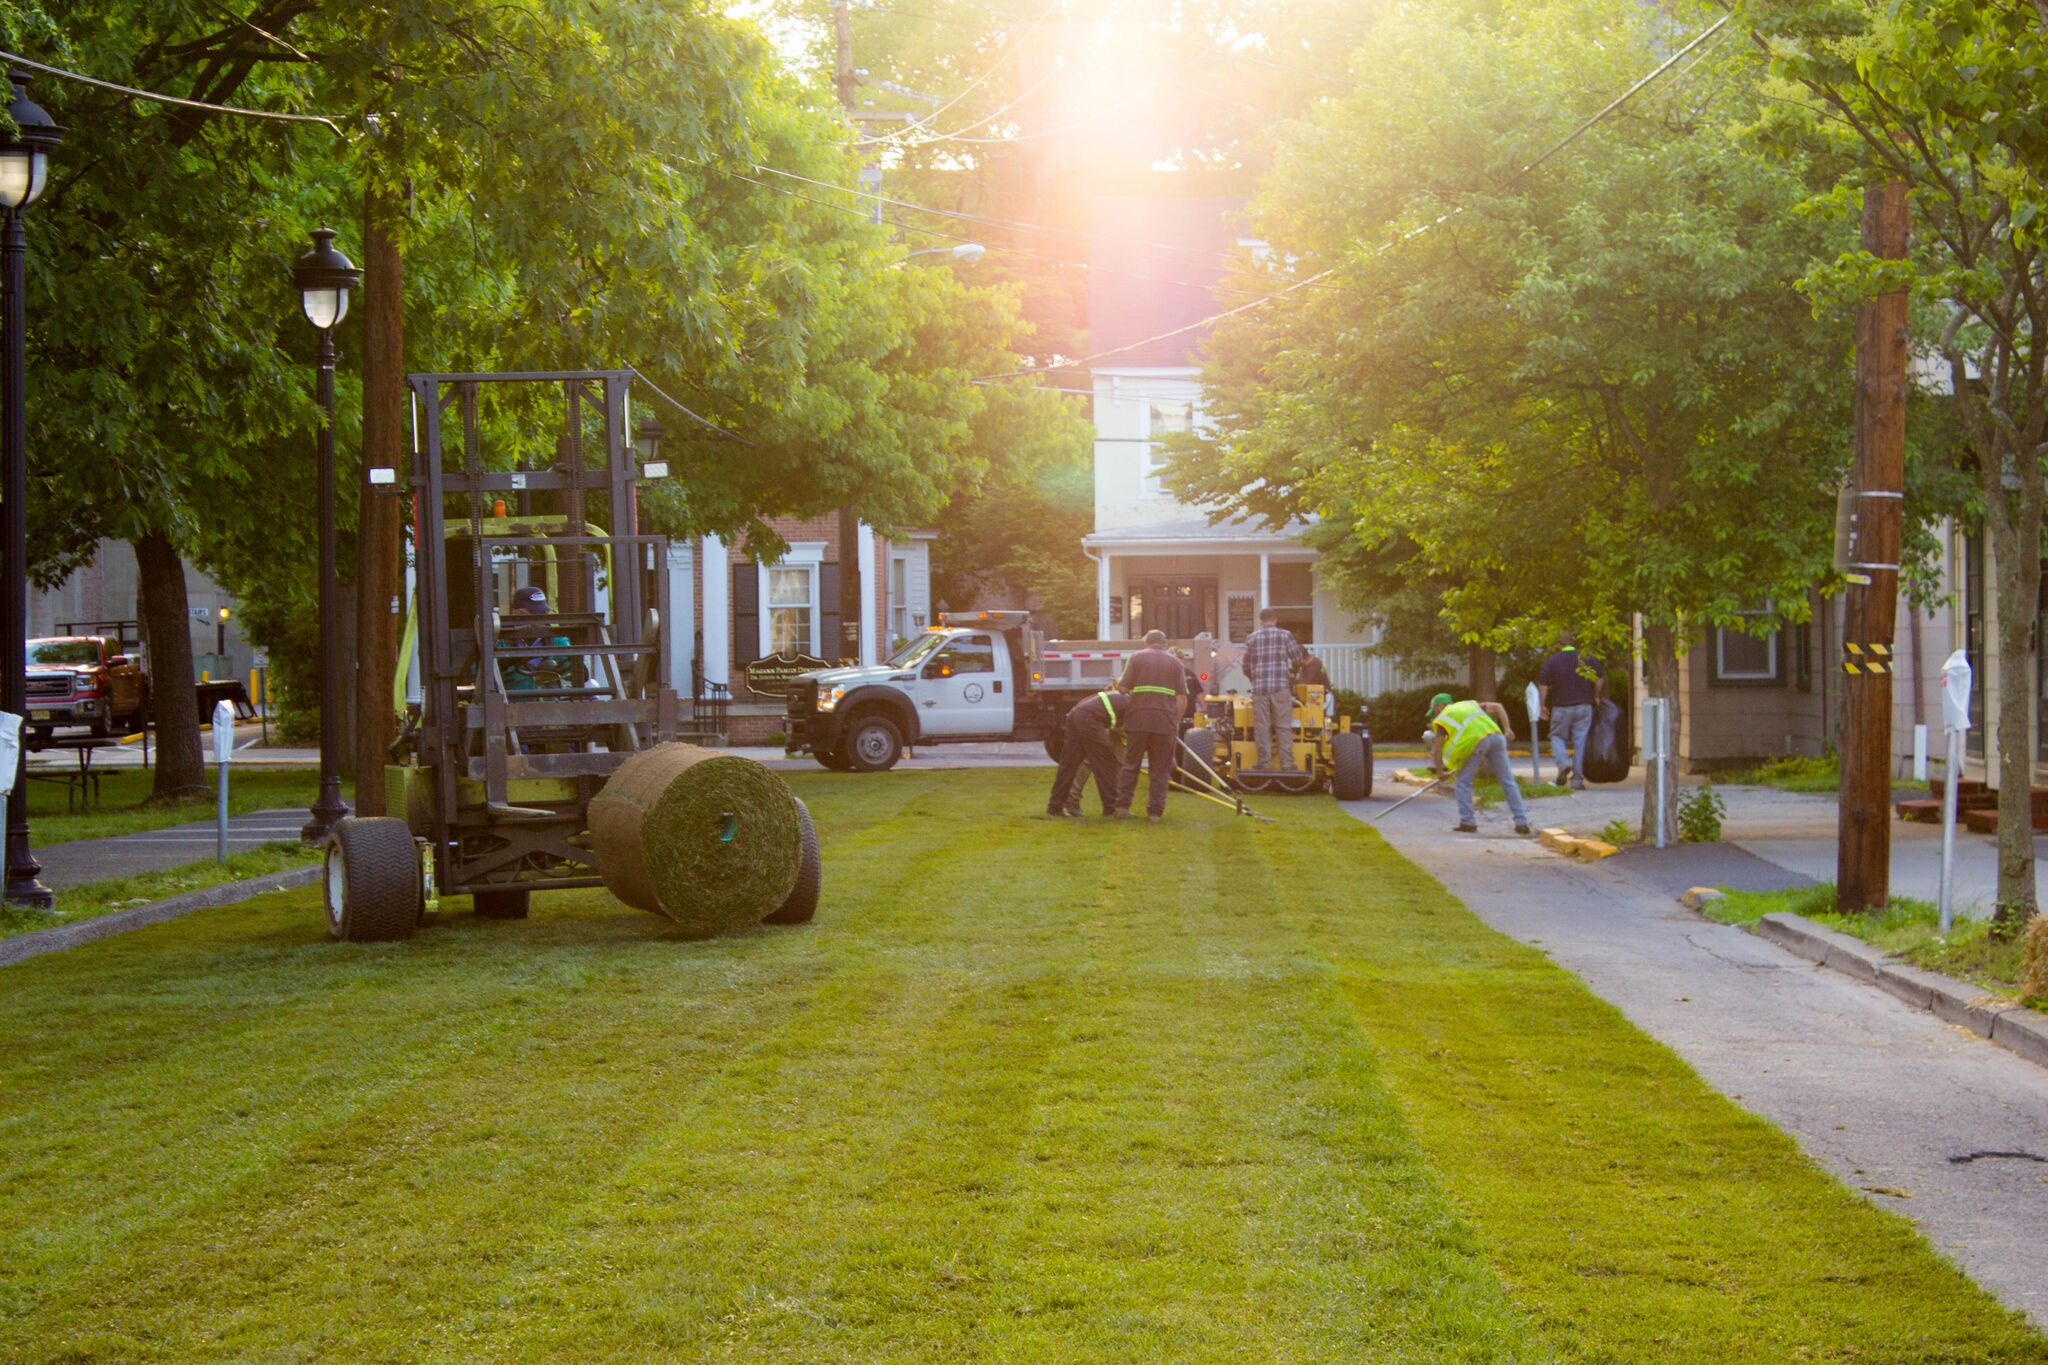 Green Street Challenges comes to Pennsylvania